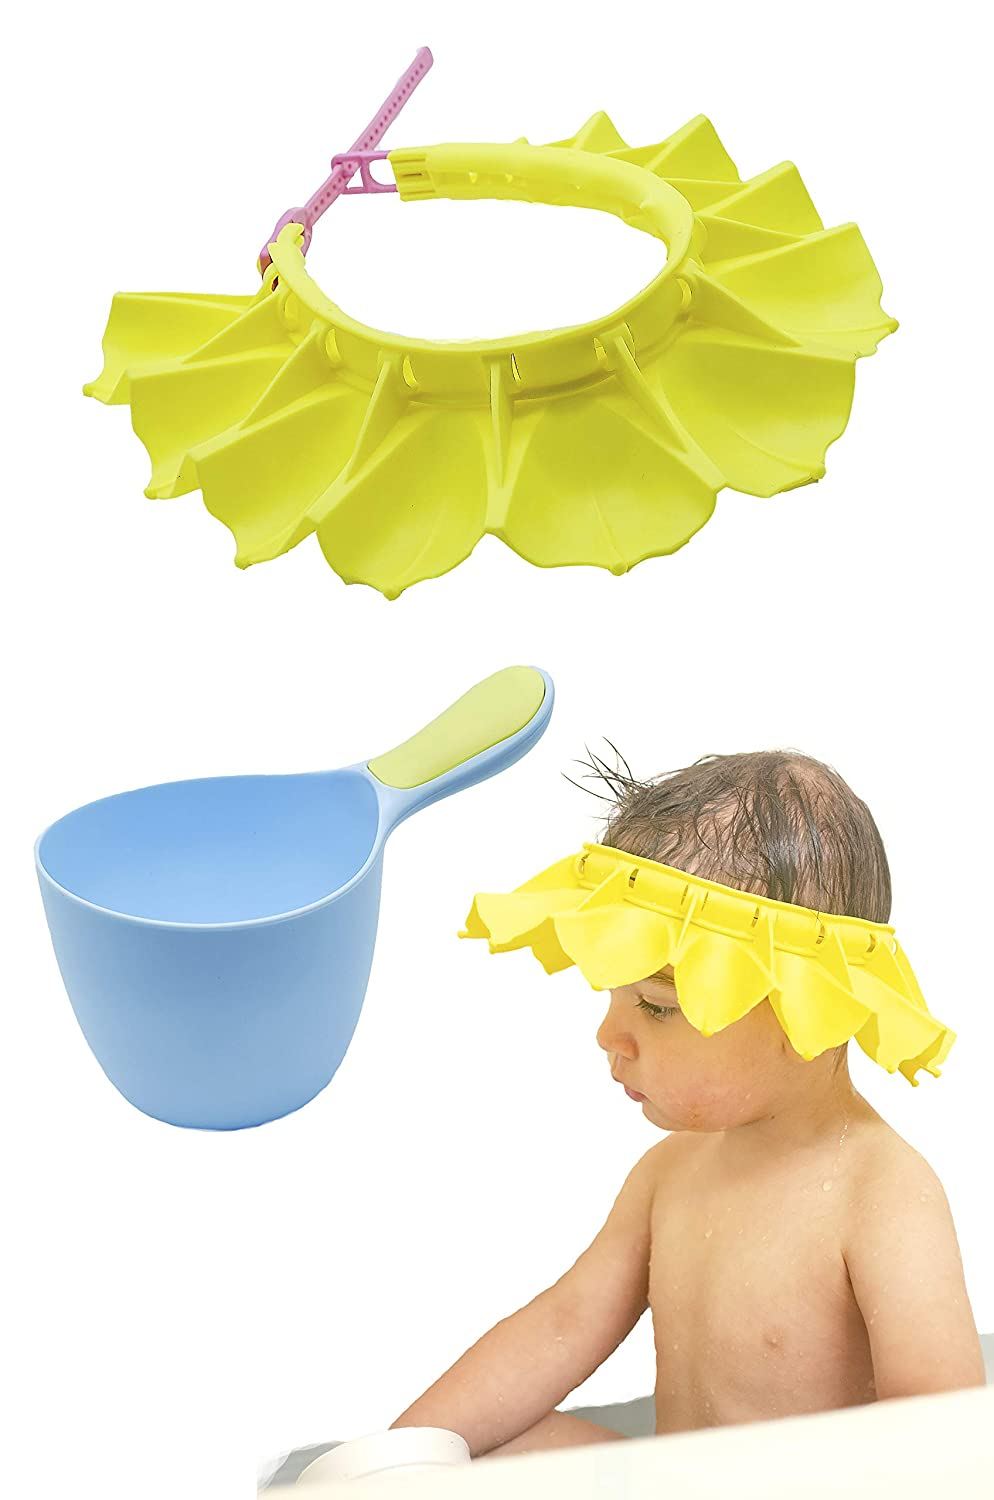 Silicone Baby Shower Cap with Baby Shampoo Rinse Cup Bath Set | Adjustable Bathing Hat, Stretchy, Bath Visor for Kids, Toddlers and Baby's | Safe and Soft (Yellow)